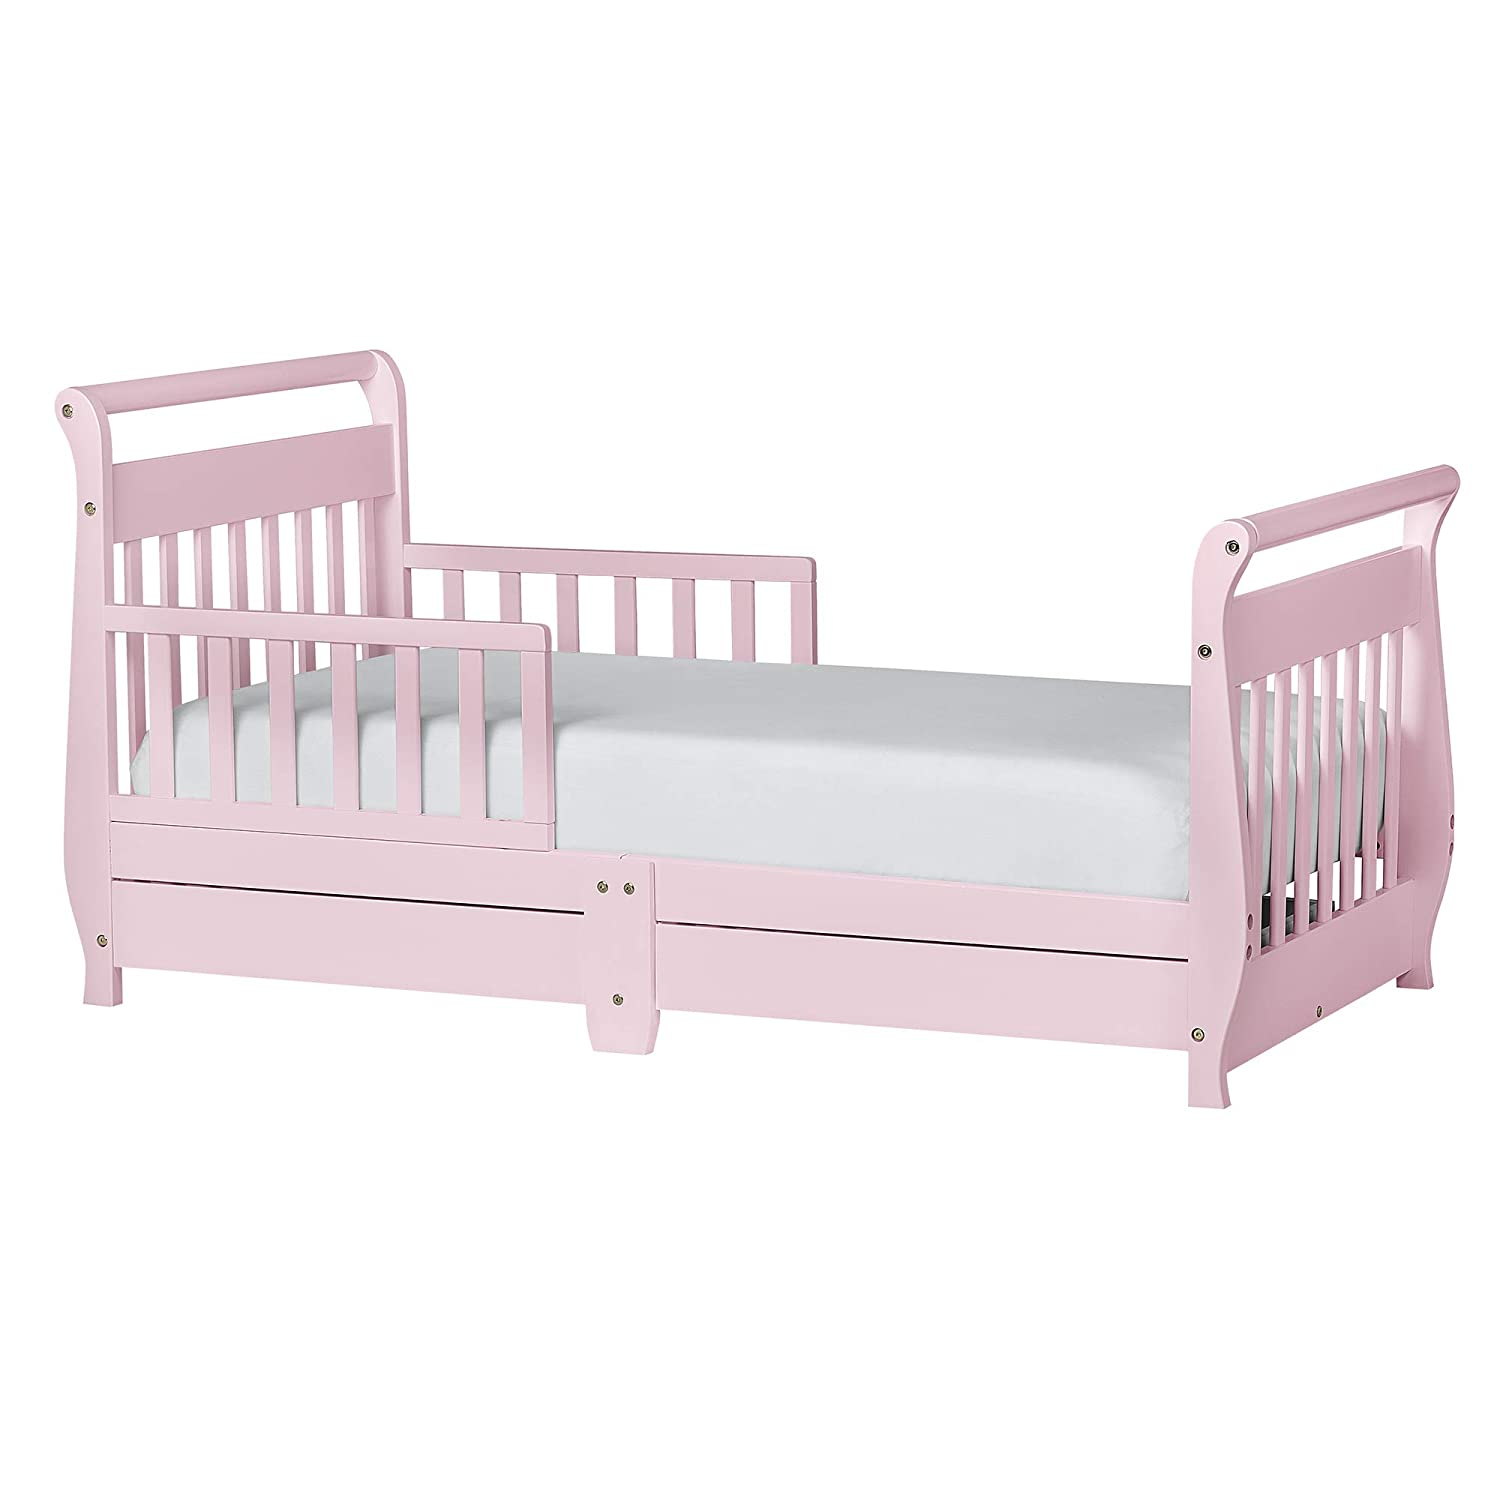 Amazoncom Dream On Me Sleigh Toddler Bed With Storage Drawer